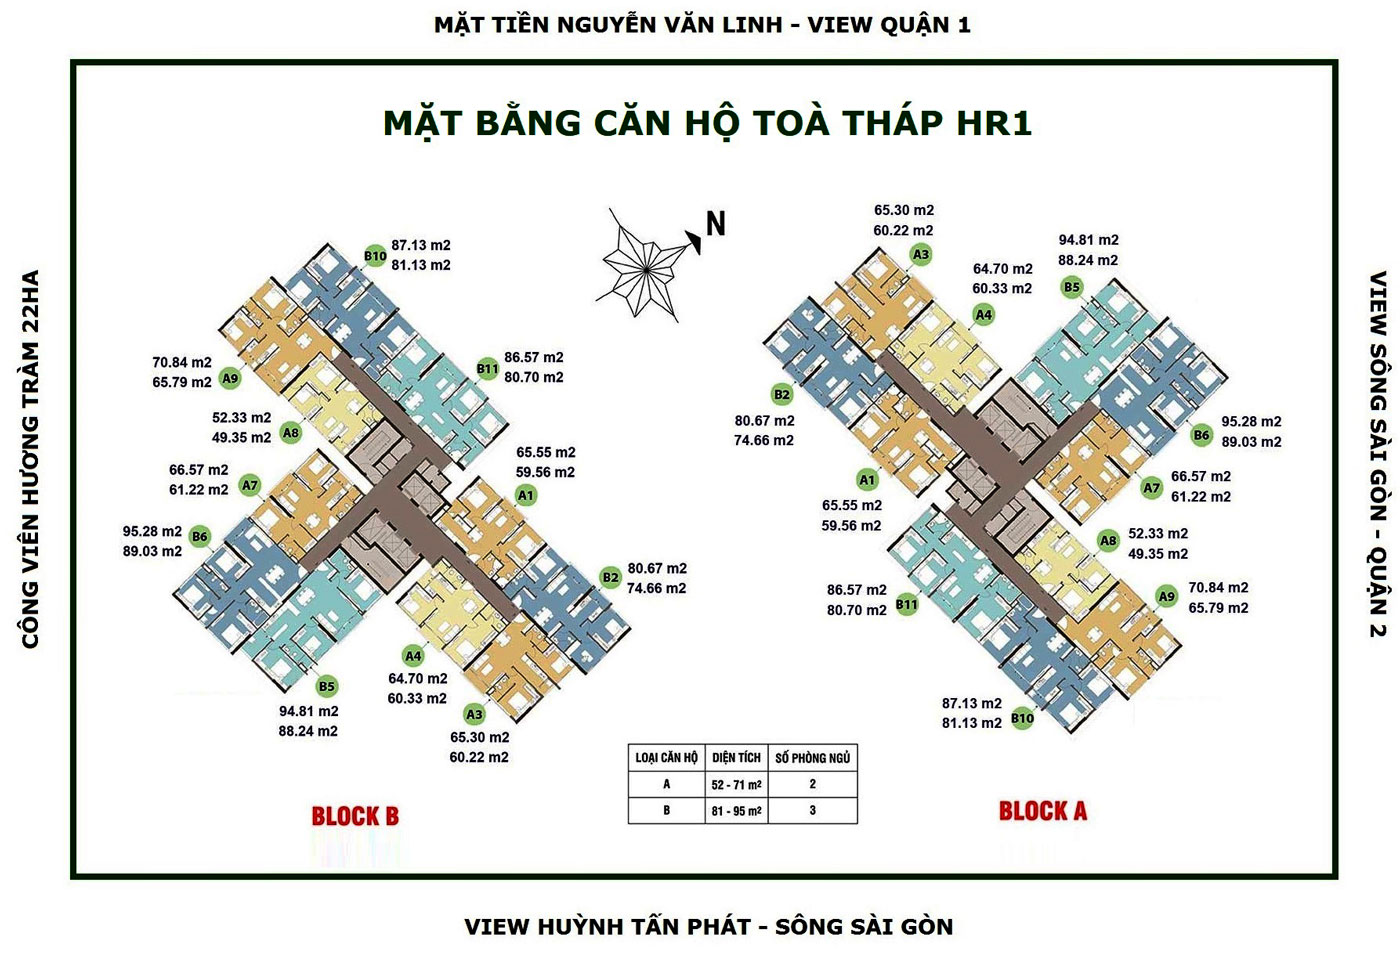 mat bang block hr1 du an can ho eco green sai gon